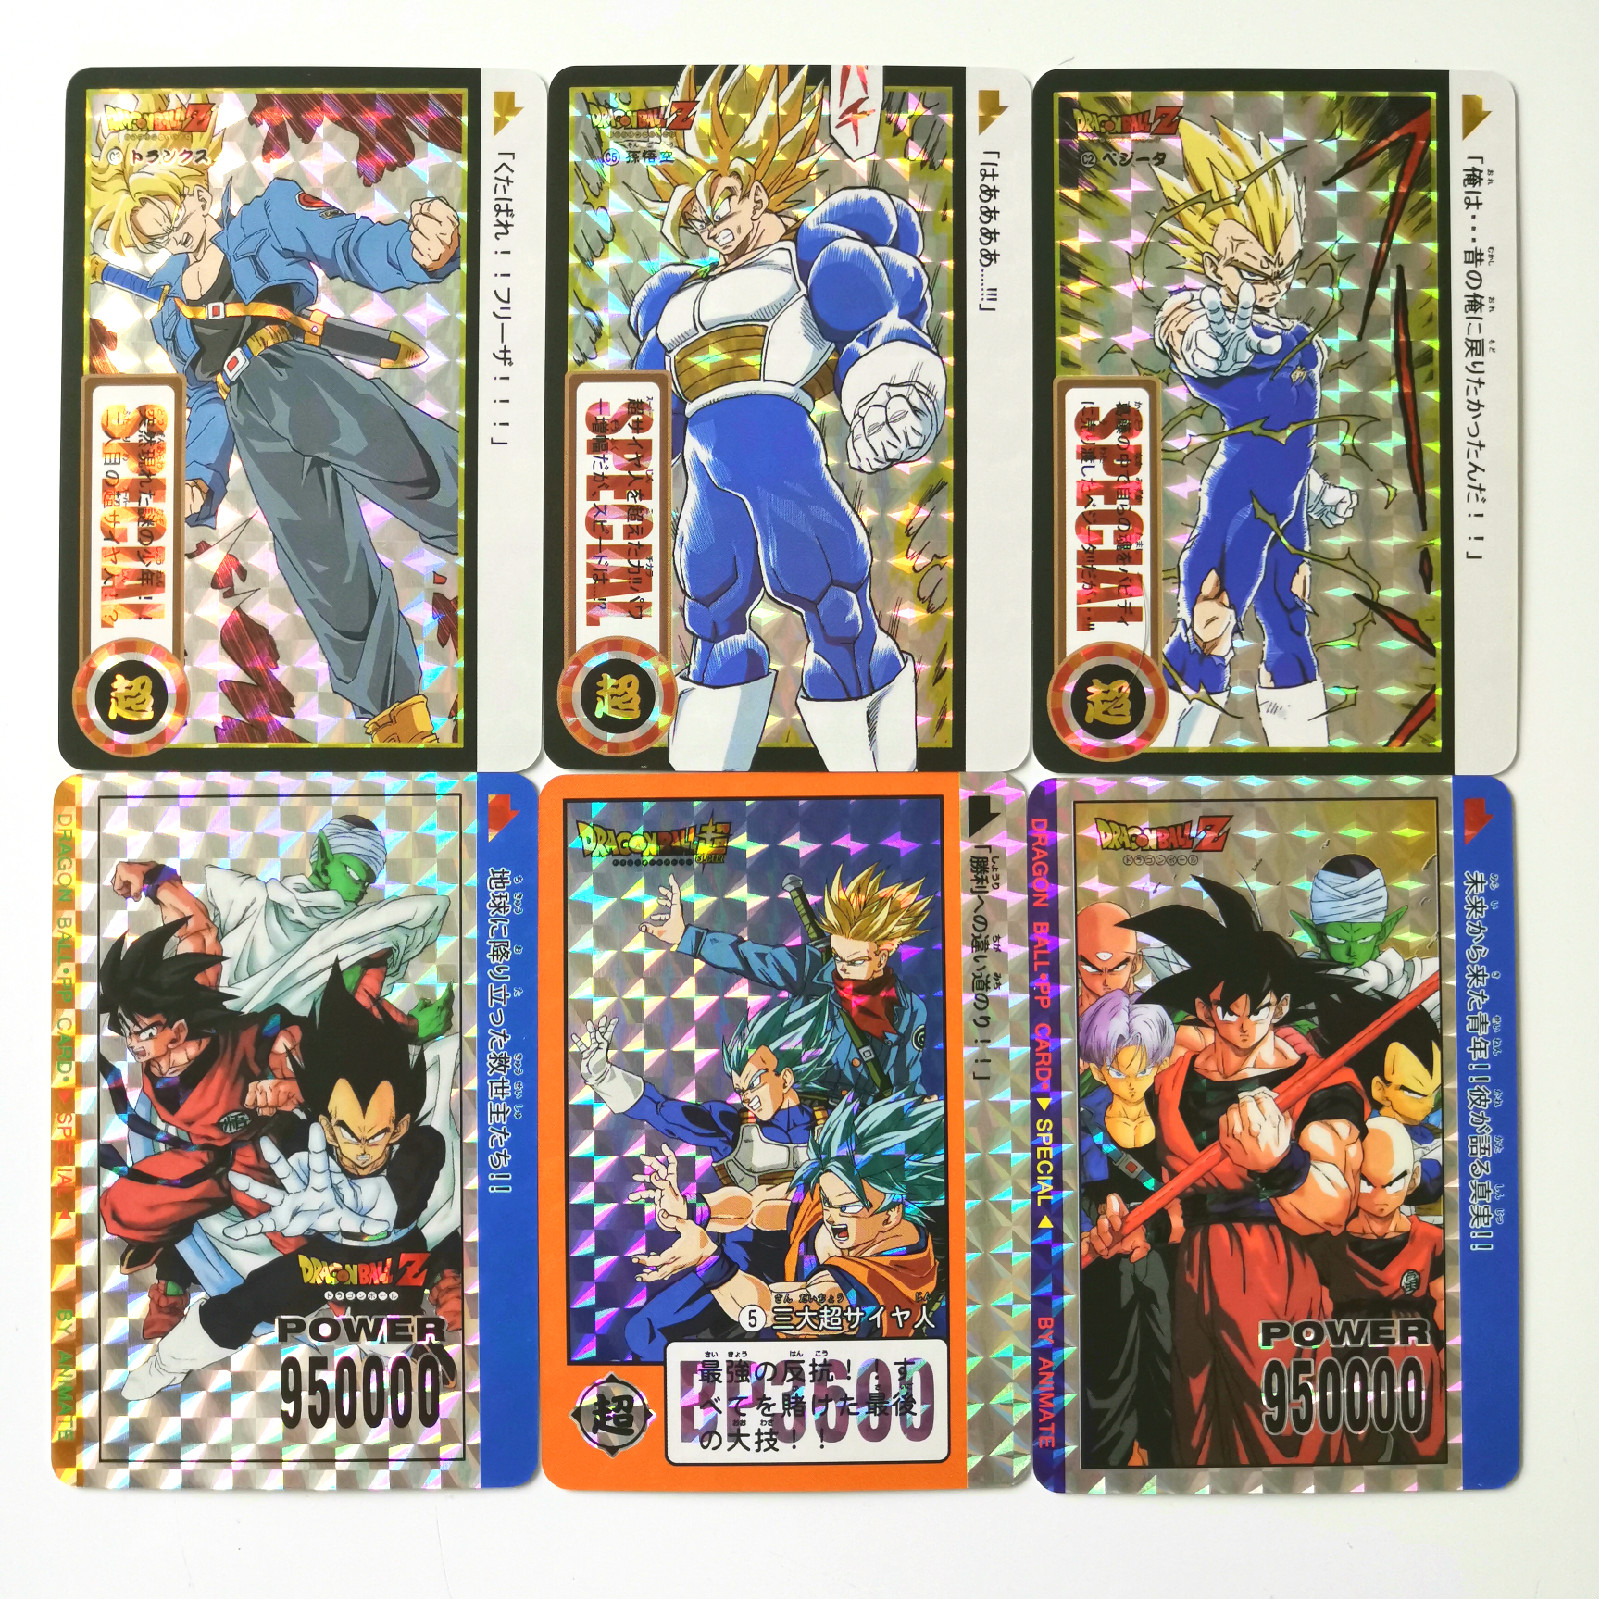 45pcs Super Dragon Ball Z Tenth Bomb Heroes Battle Card Ultra Instinct Goku Vegeta Super Game Collection Cards